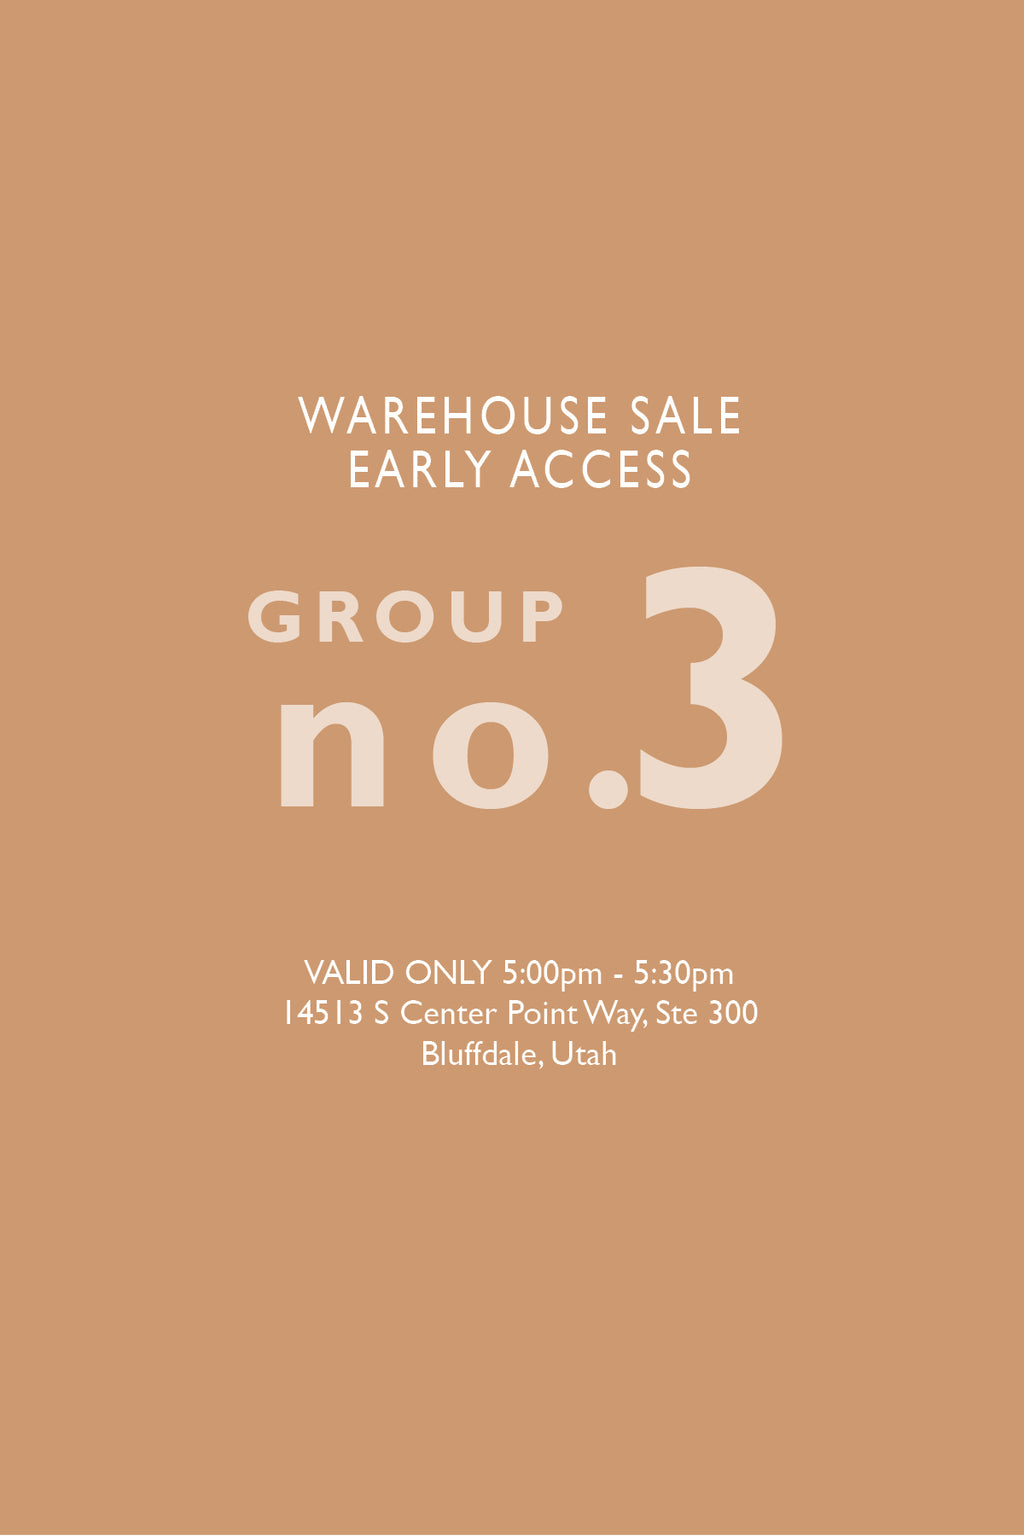 Warehouse Sale EARLY ACCESS: Group No. 3 | 5:00-5:30pm